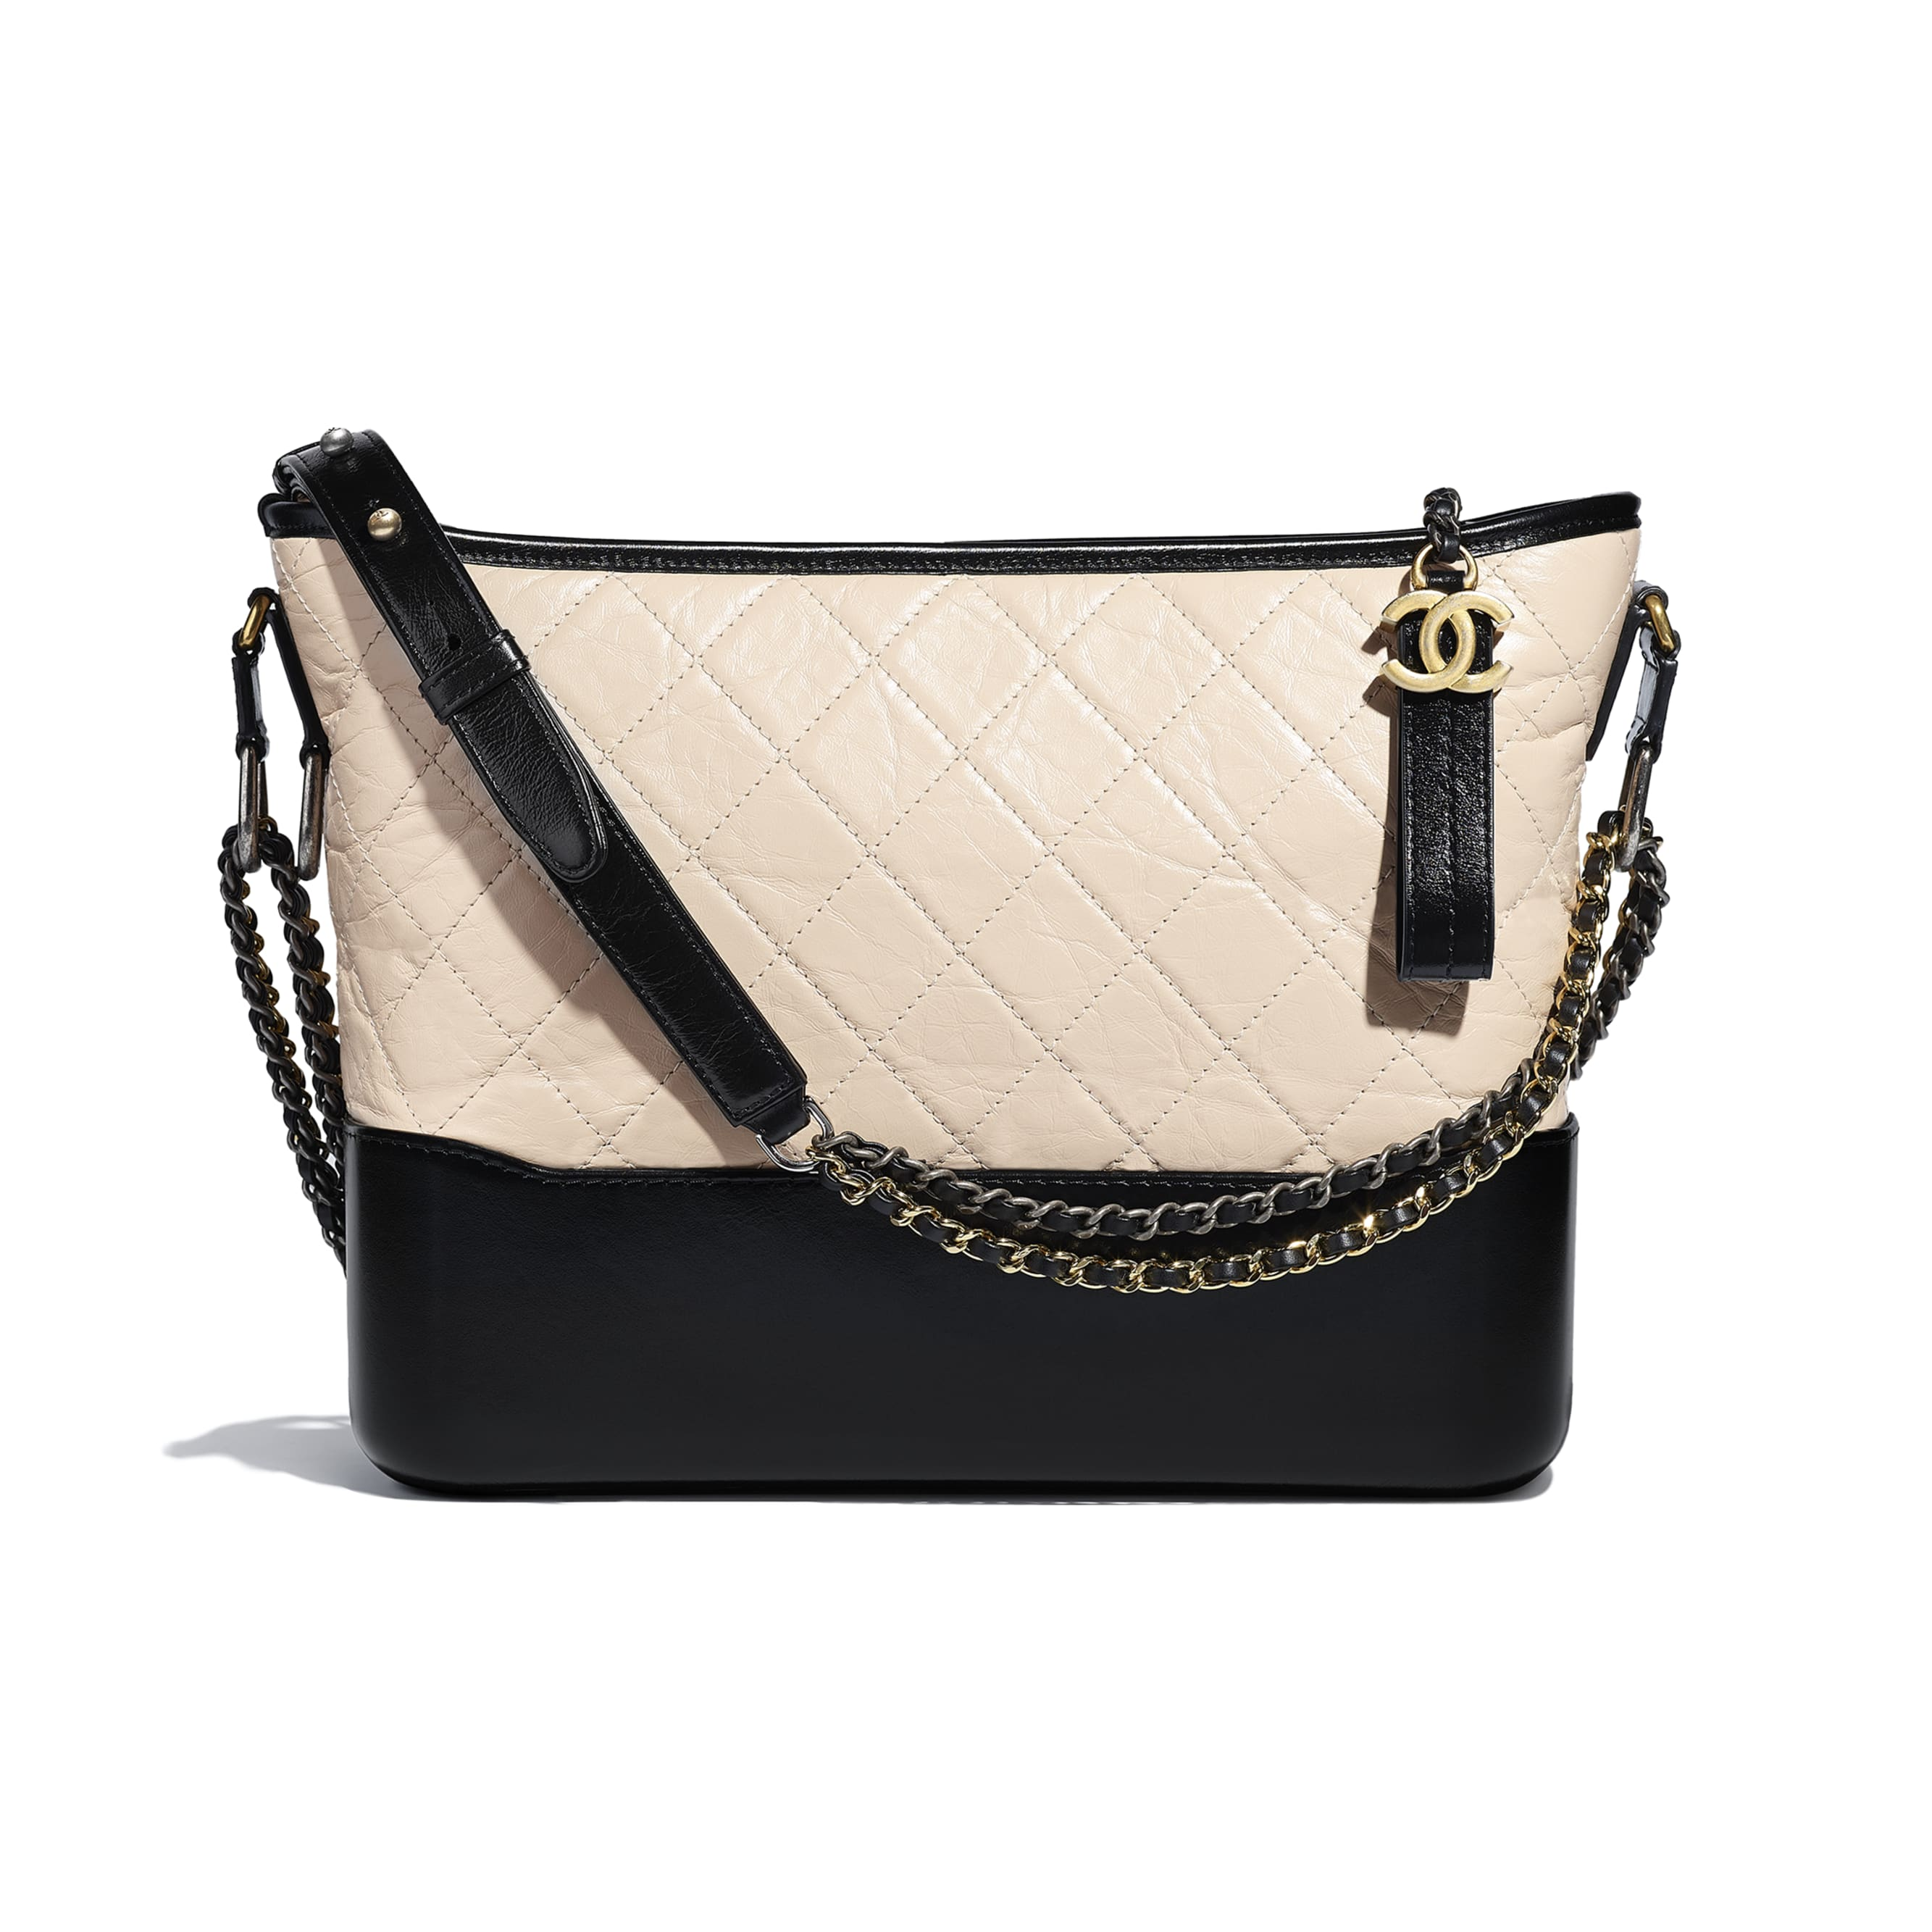 CHANEL'S GABRIELLE Large Hobo Bag - Beige & Black - Aged Calfskin, Smooth Calfskin, Silver-Tone & Gold-Tone Metal - Default view - see standard sized version